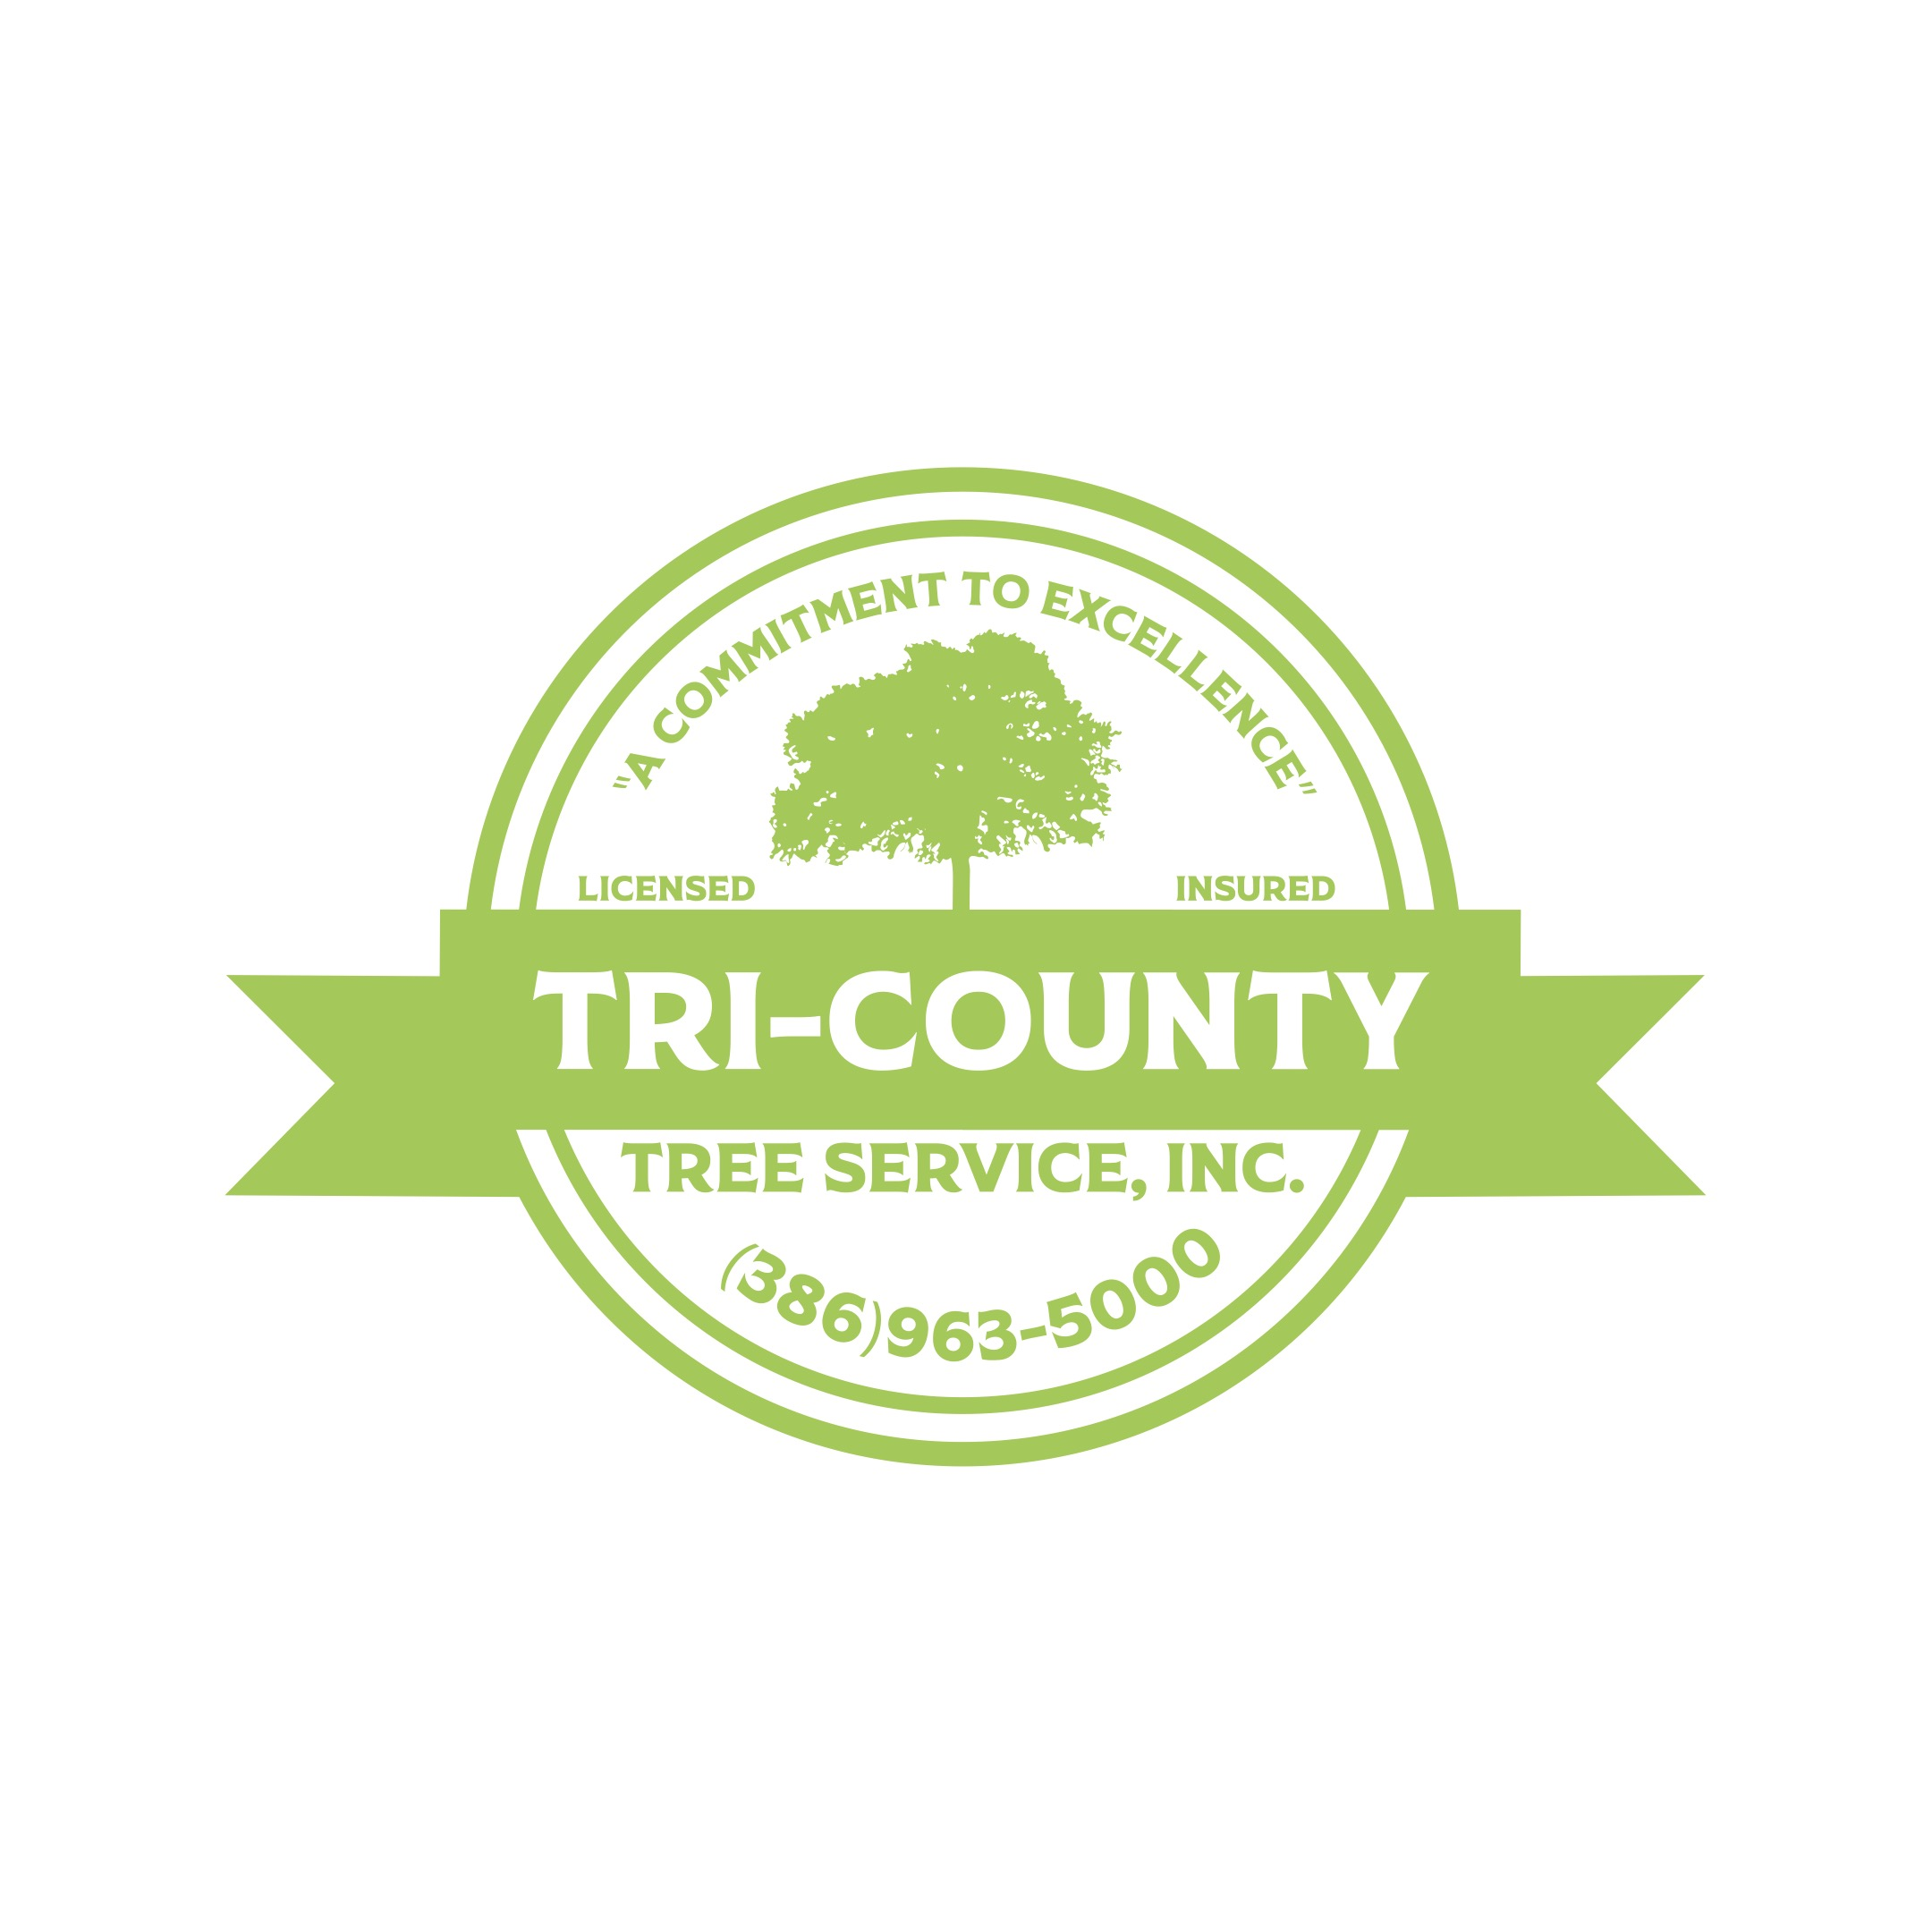 Tri-County Tree Services, Inc.